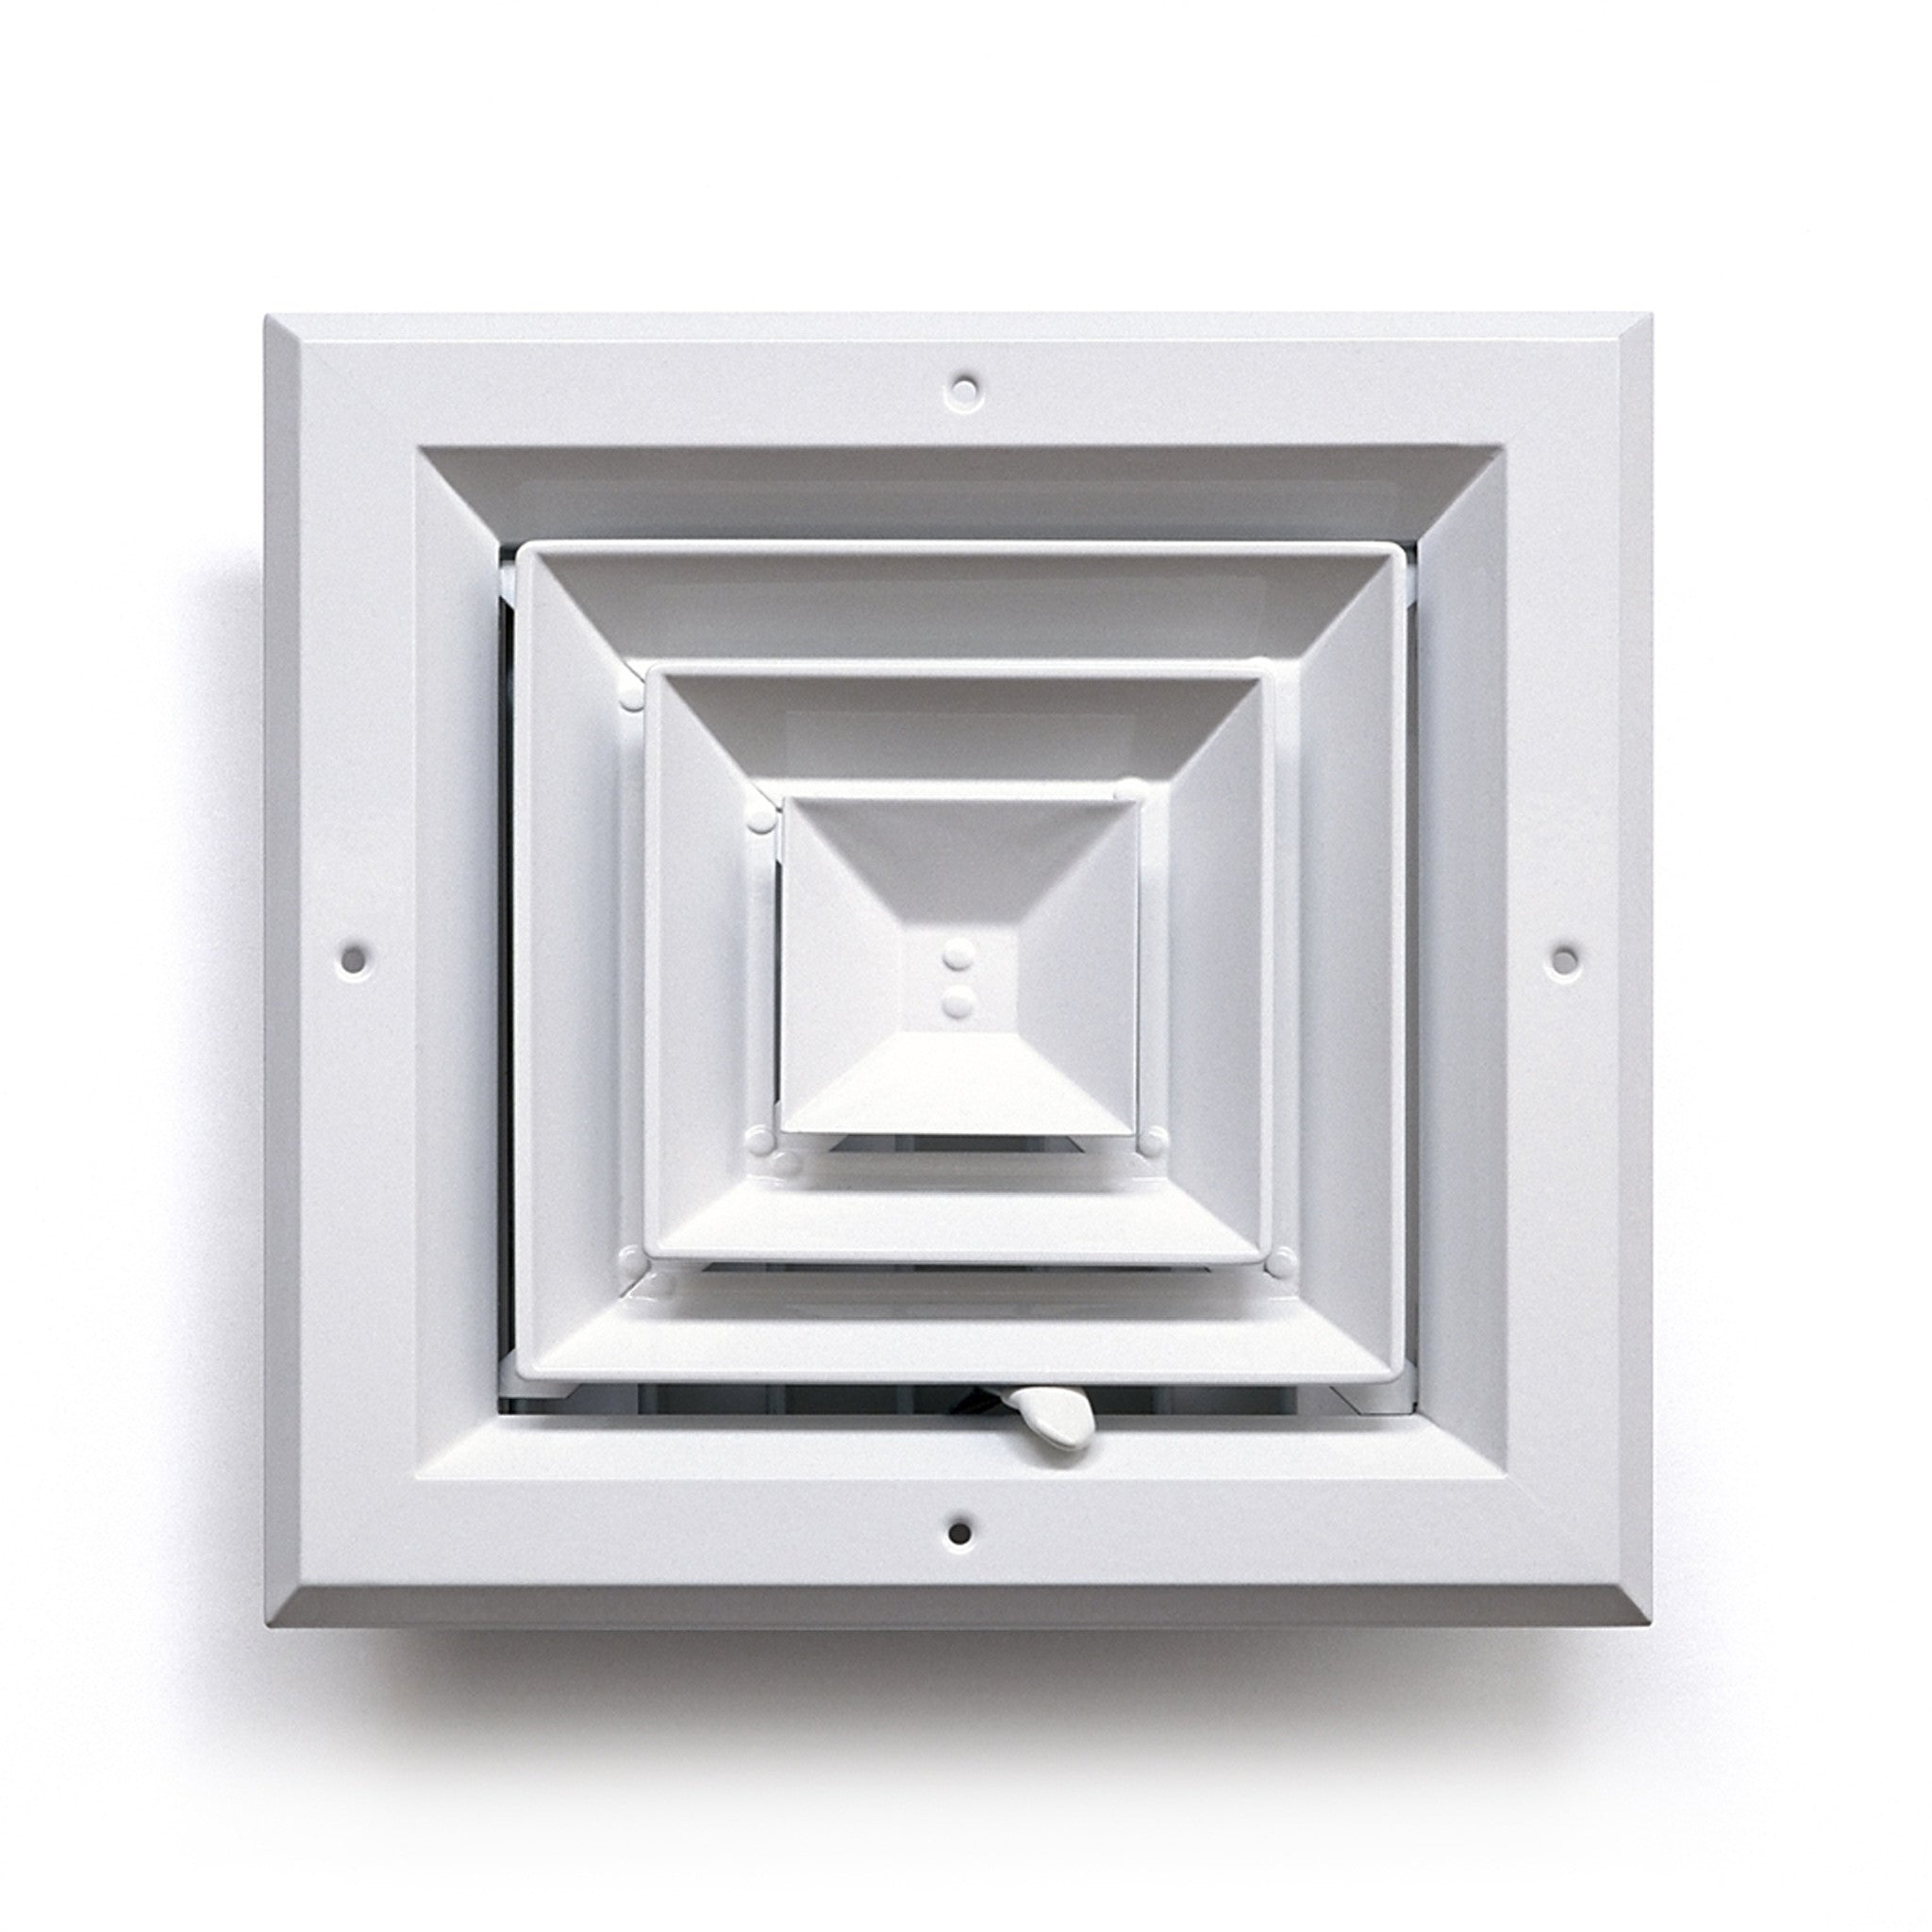 Square Ceiling Diffuser 4 Way Architectural Grille